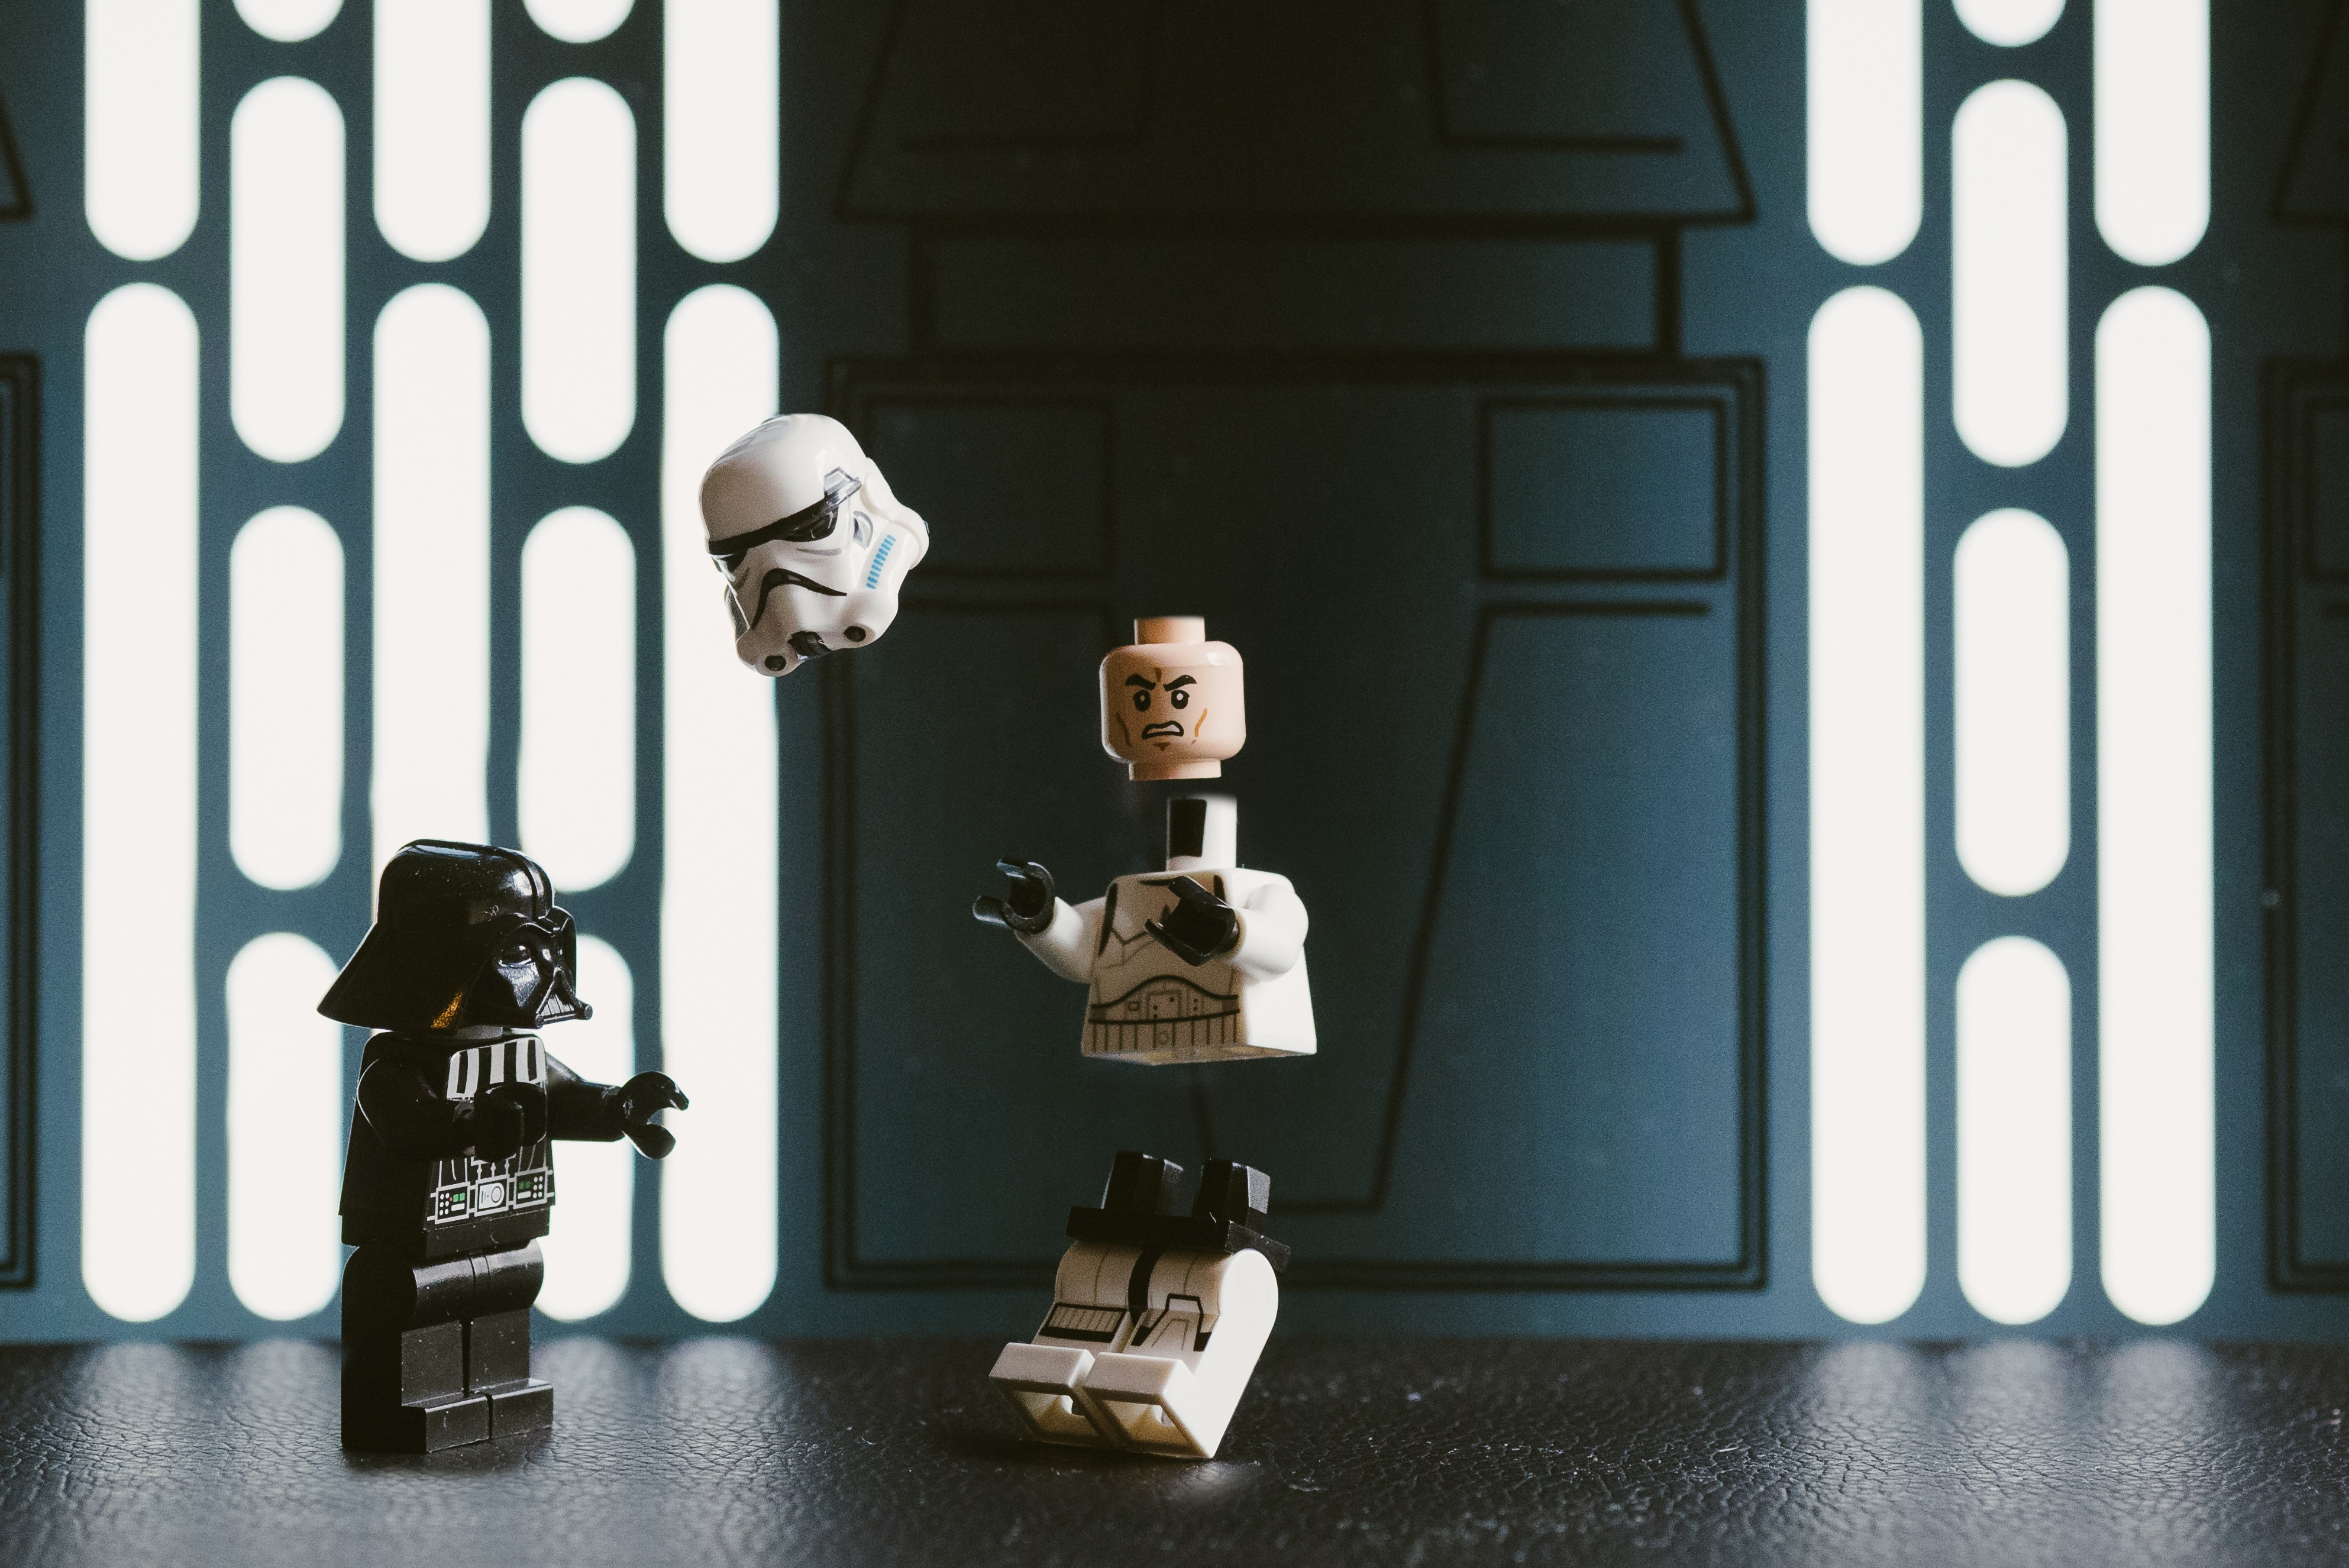 Darth Vader Lego figure beside Stormtrooper